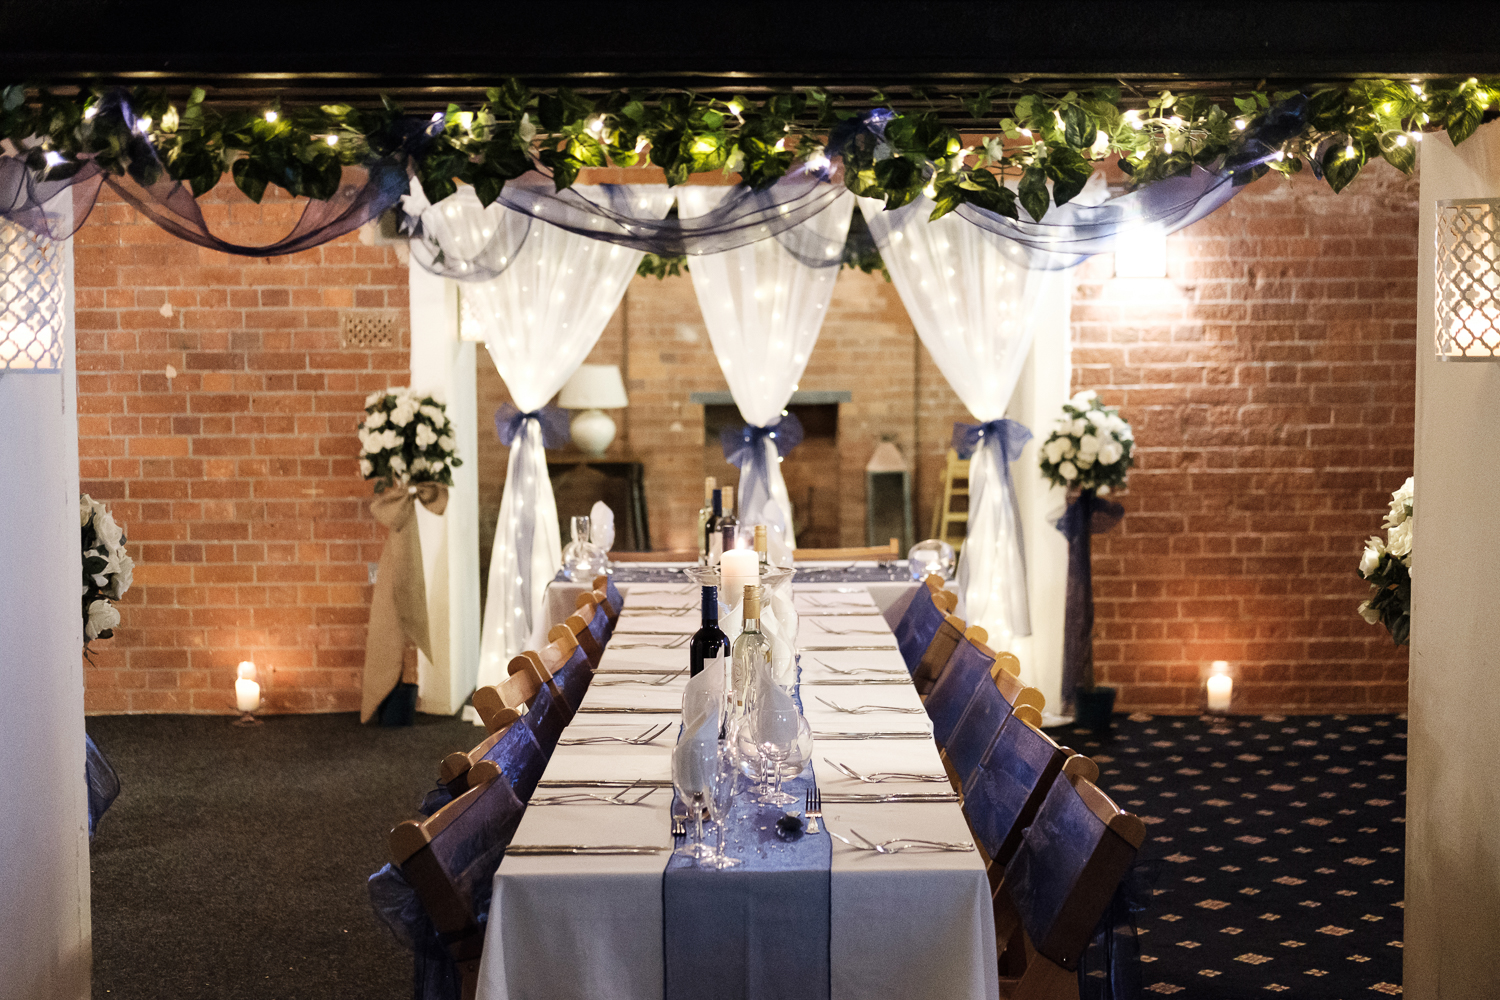 Table layout at Connie and Richard's Whitsand Bay Fort Wedding